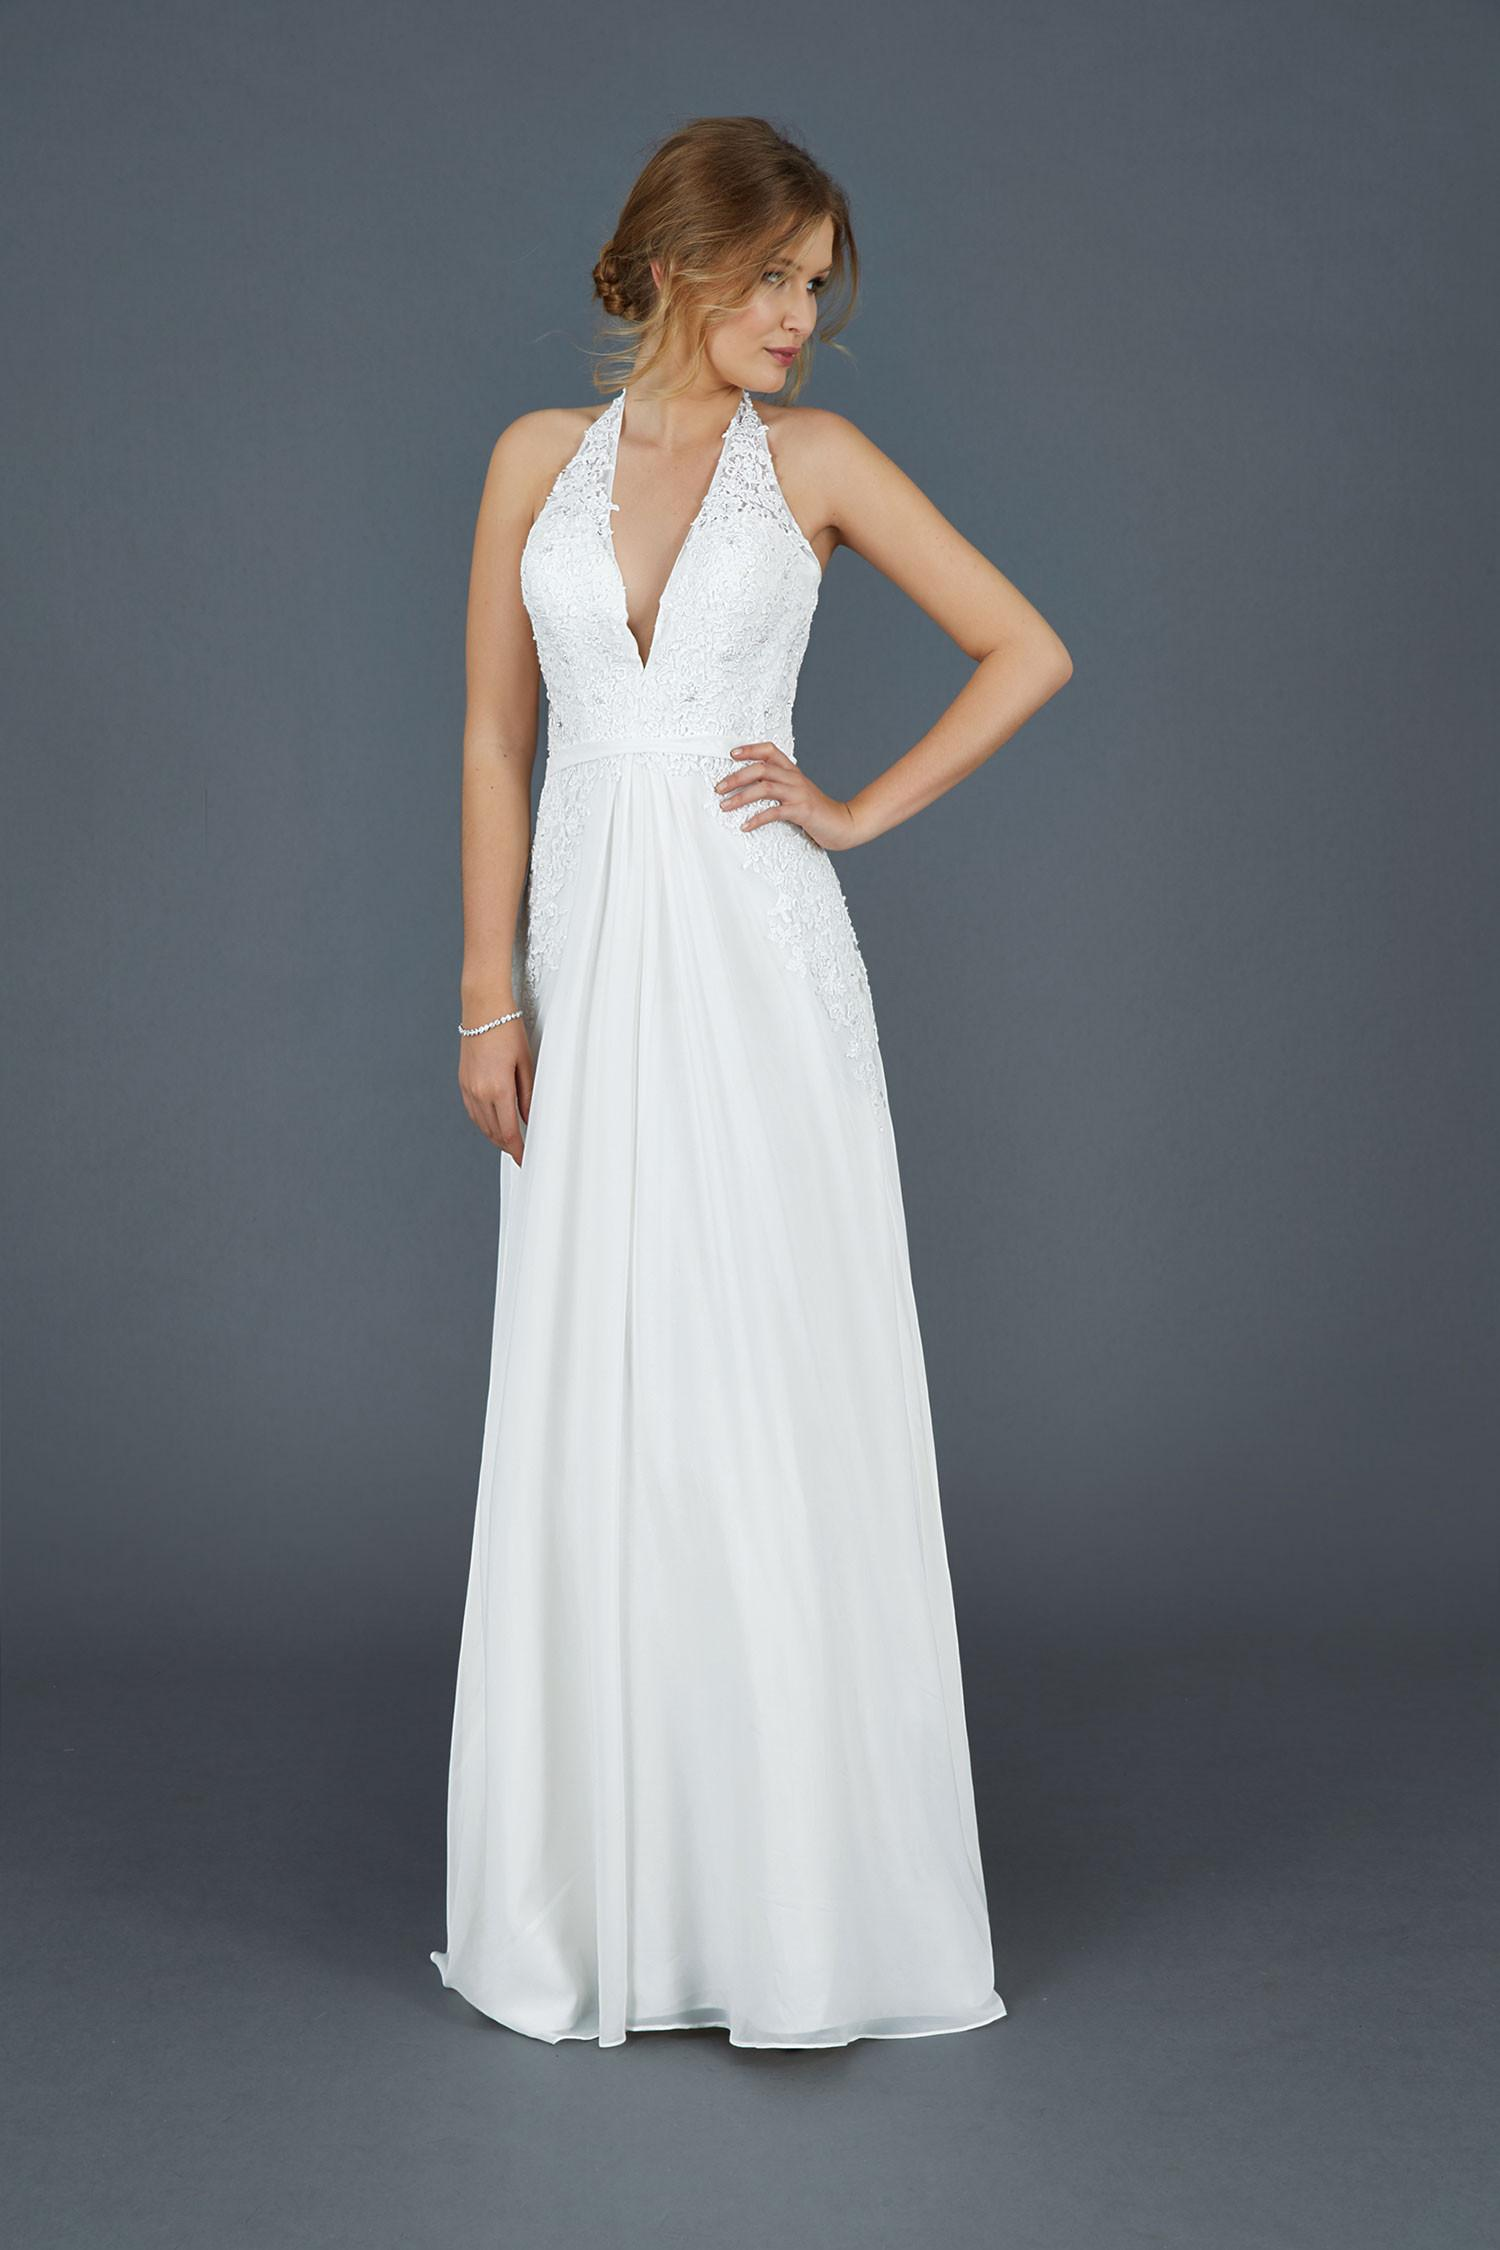 2016 Fashion Plunging Necklines Wedding Dresses Cheap